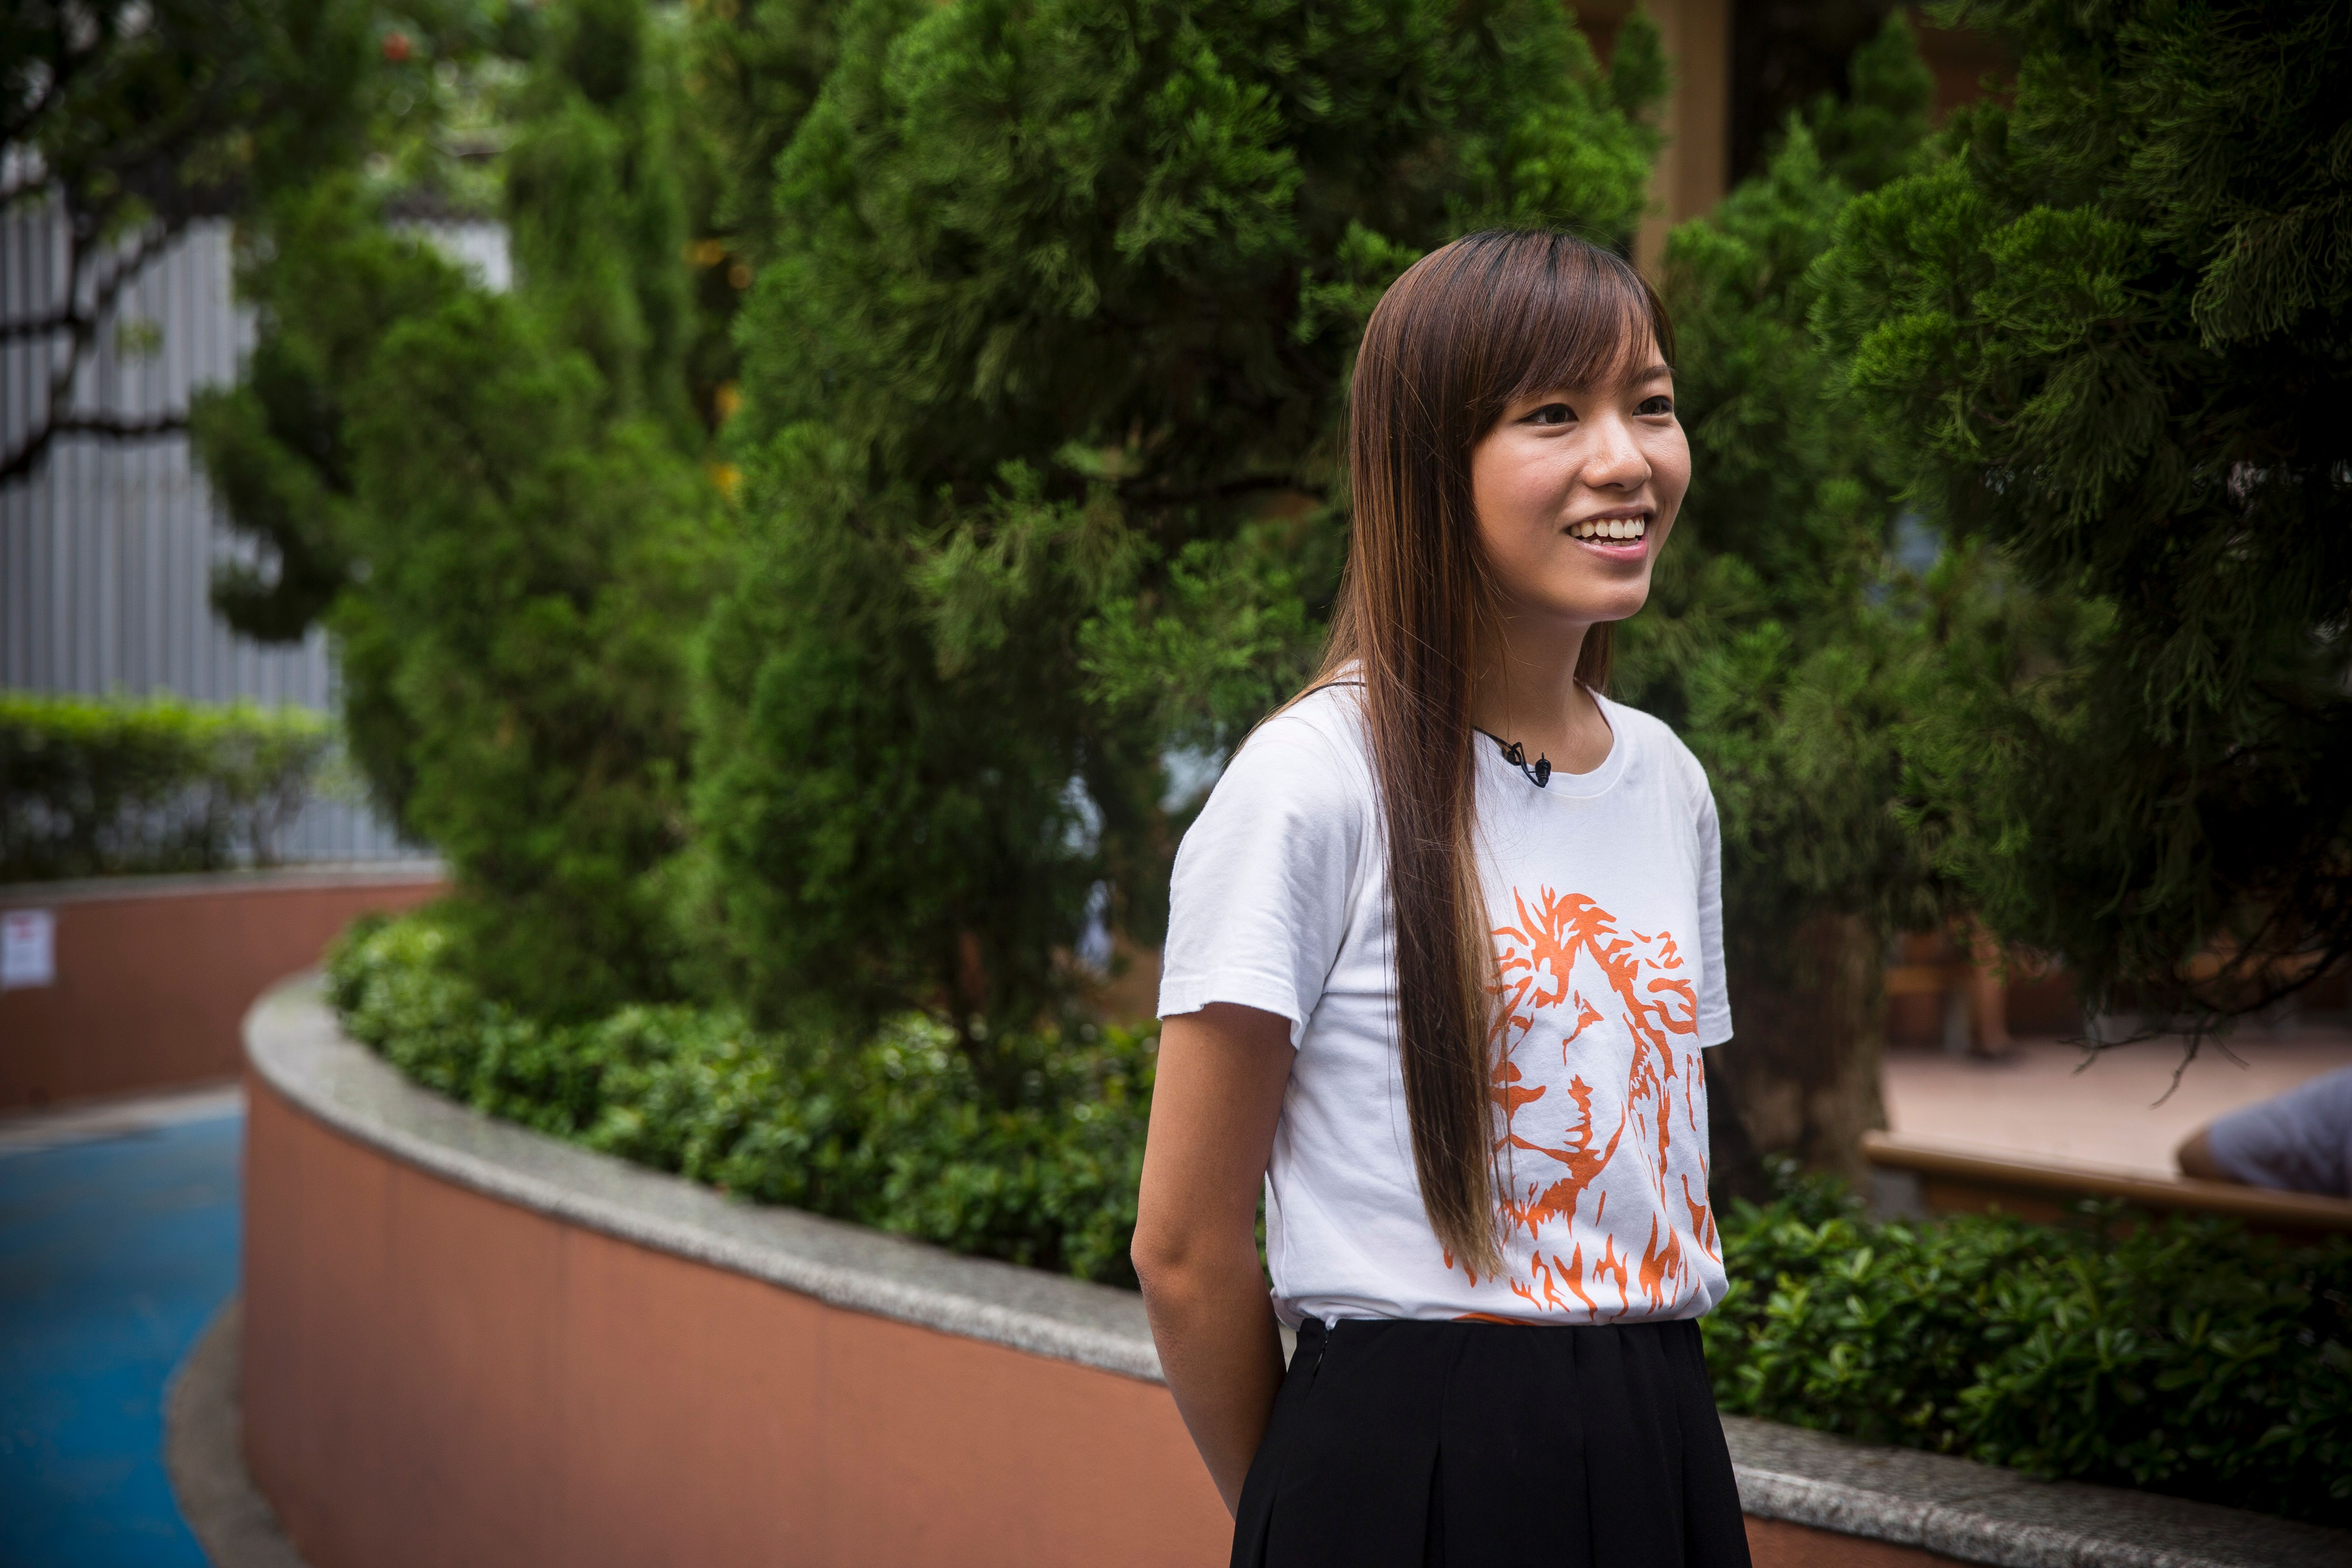 This picture taken on Sept. 15, 2016, shows Yau Wai Ching, from the political party Youngspiration, who was elected to the Hong Kong Legislative Council as a member for West Kowloon in the recent 2016 legislative elections